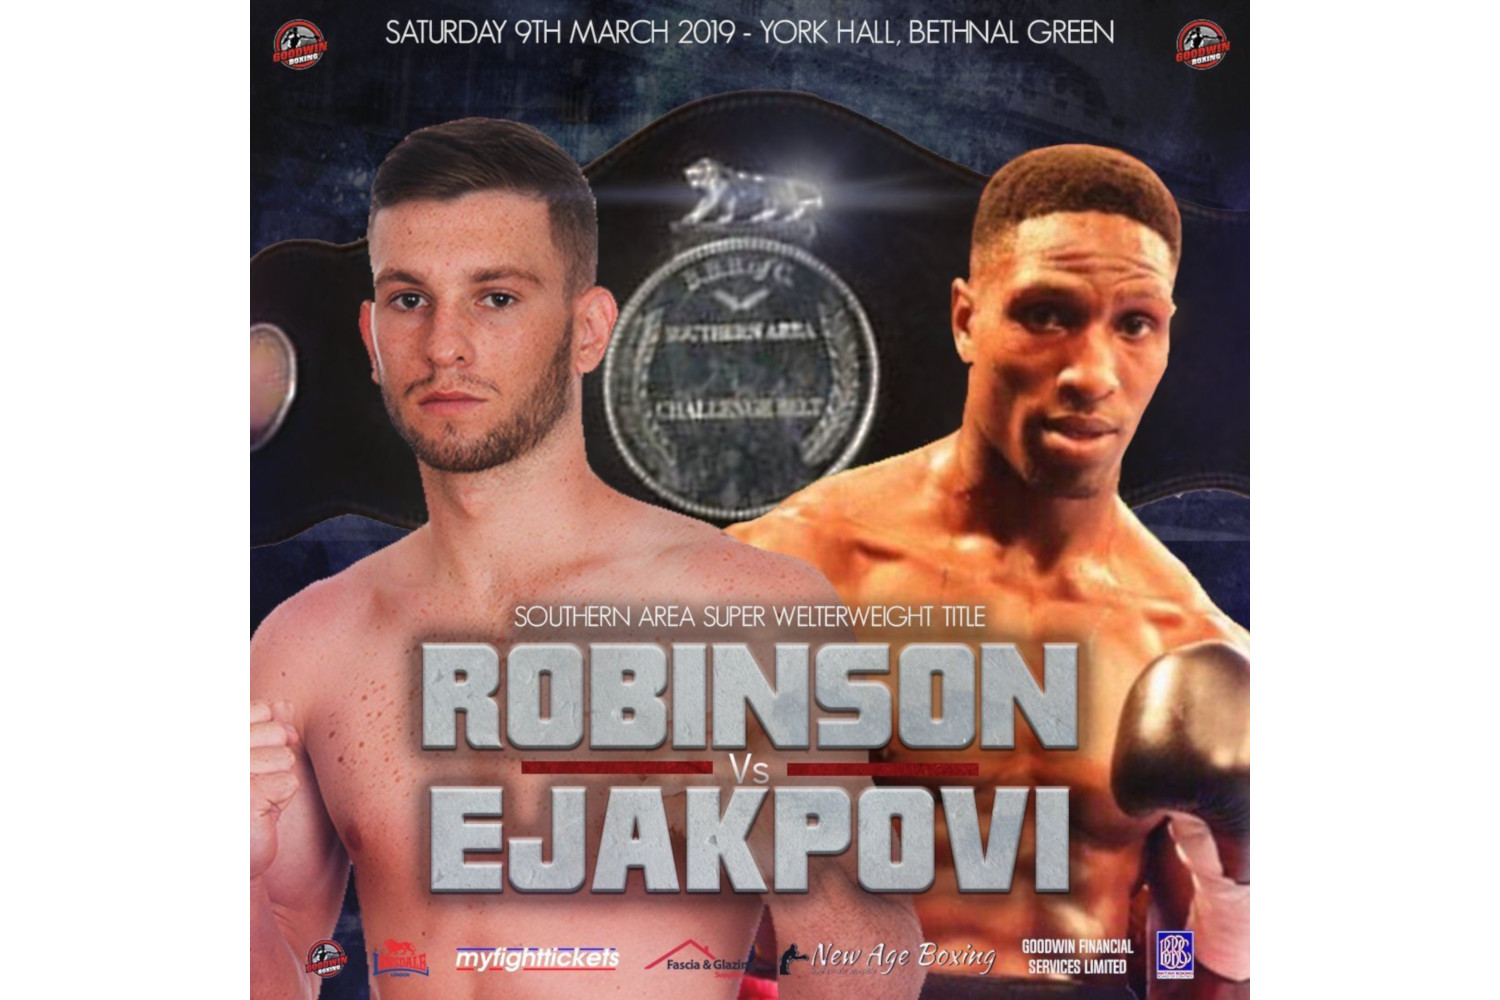 York Hall Robinson vs Ejakpovi poster